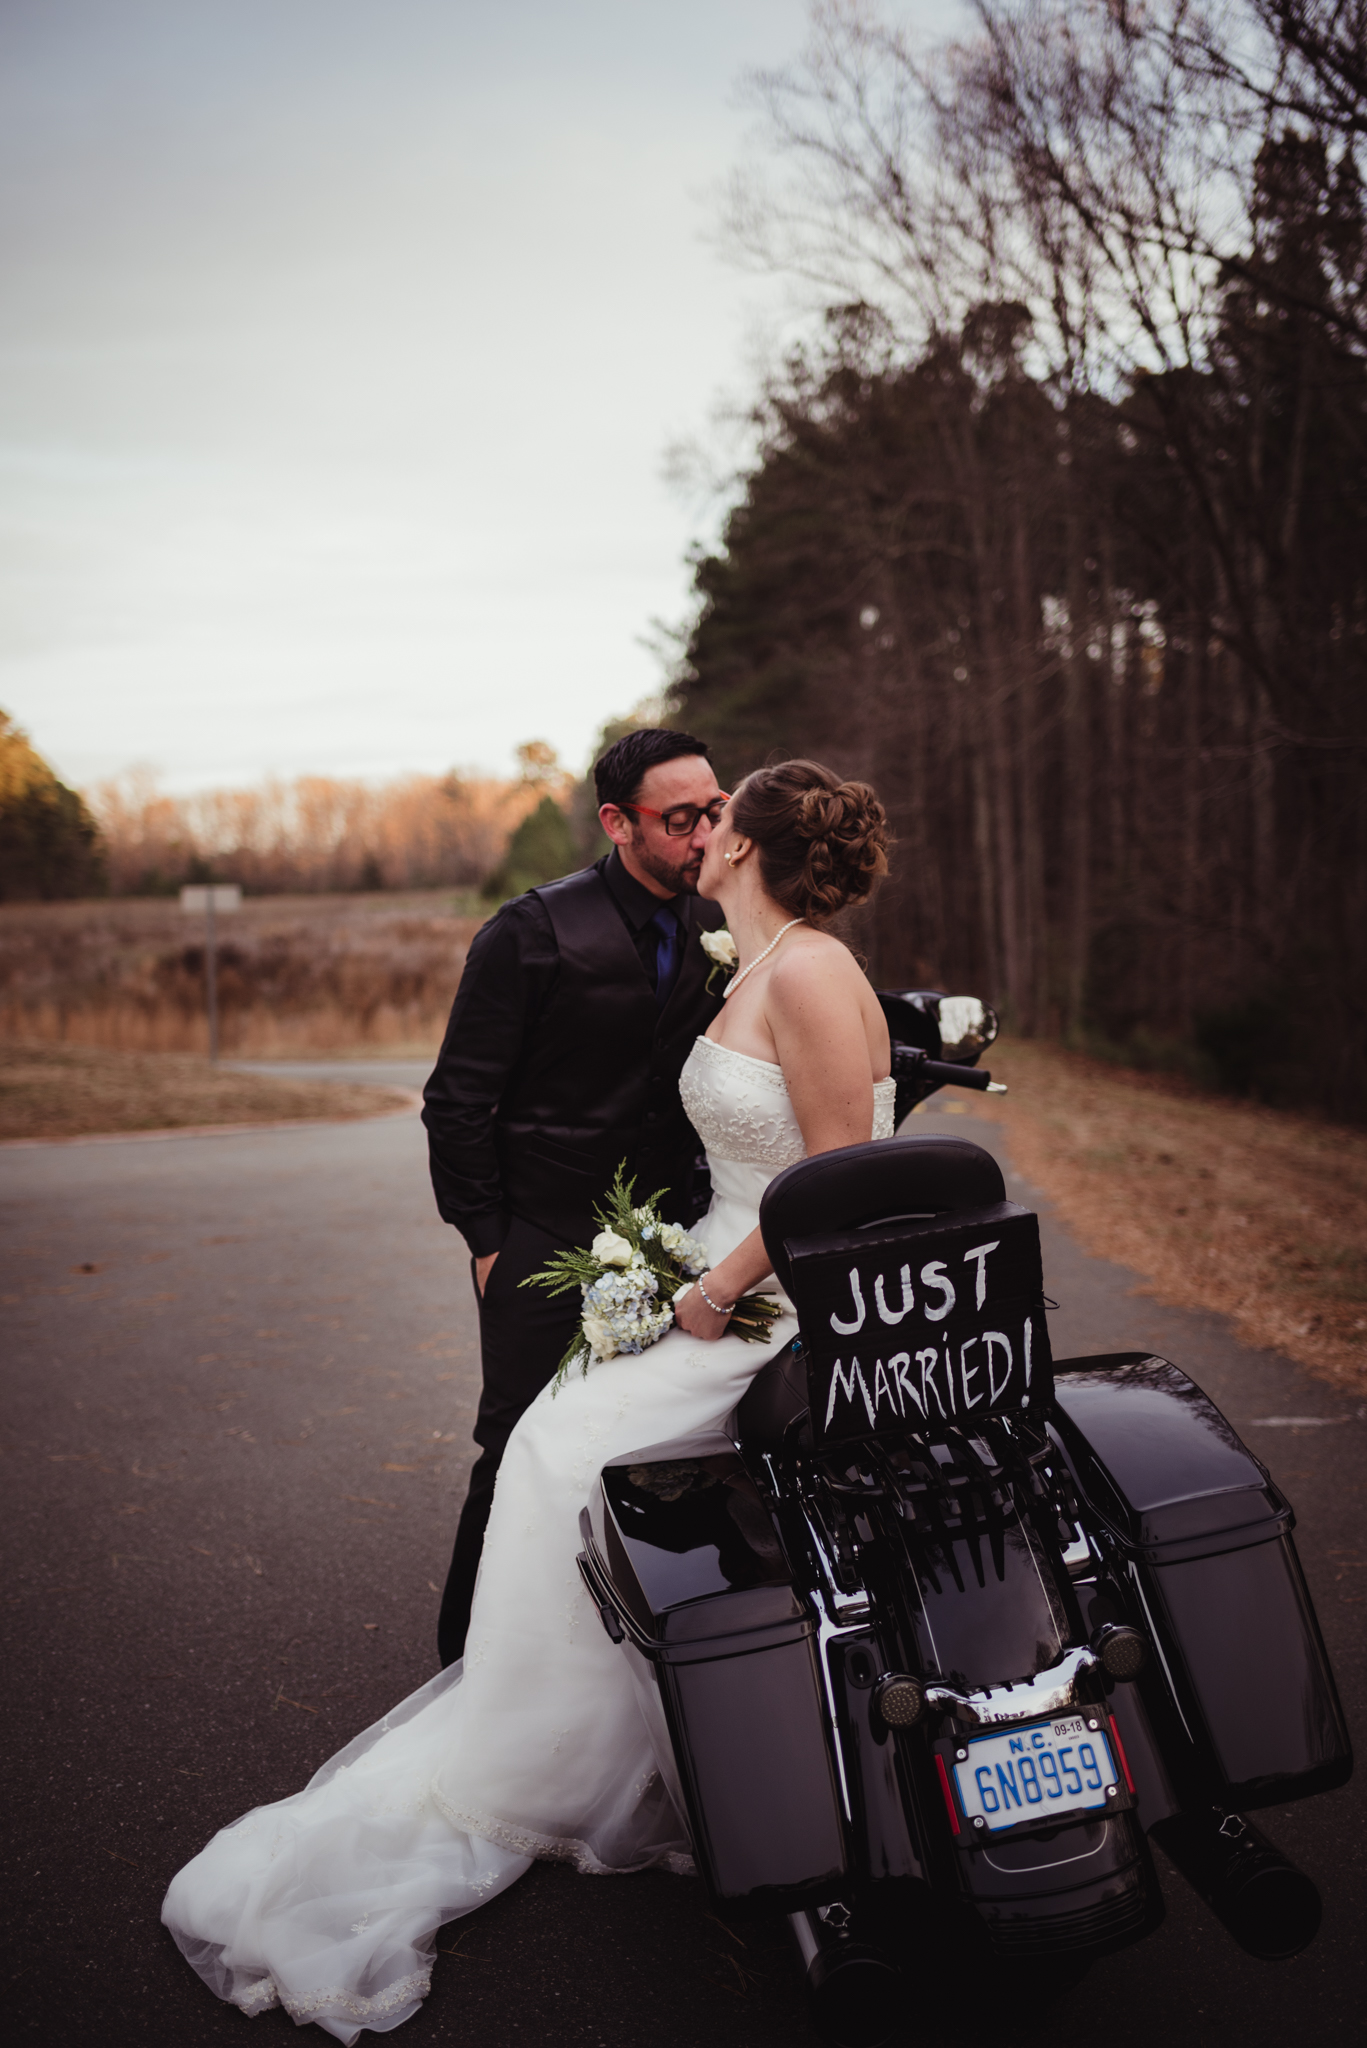 the-bride-and-groom-steal-a-kiss-on-their-bike-after-getting-married-in-raleigh.jpg